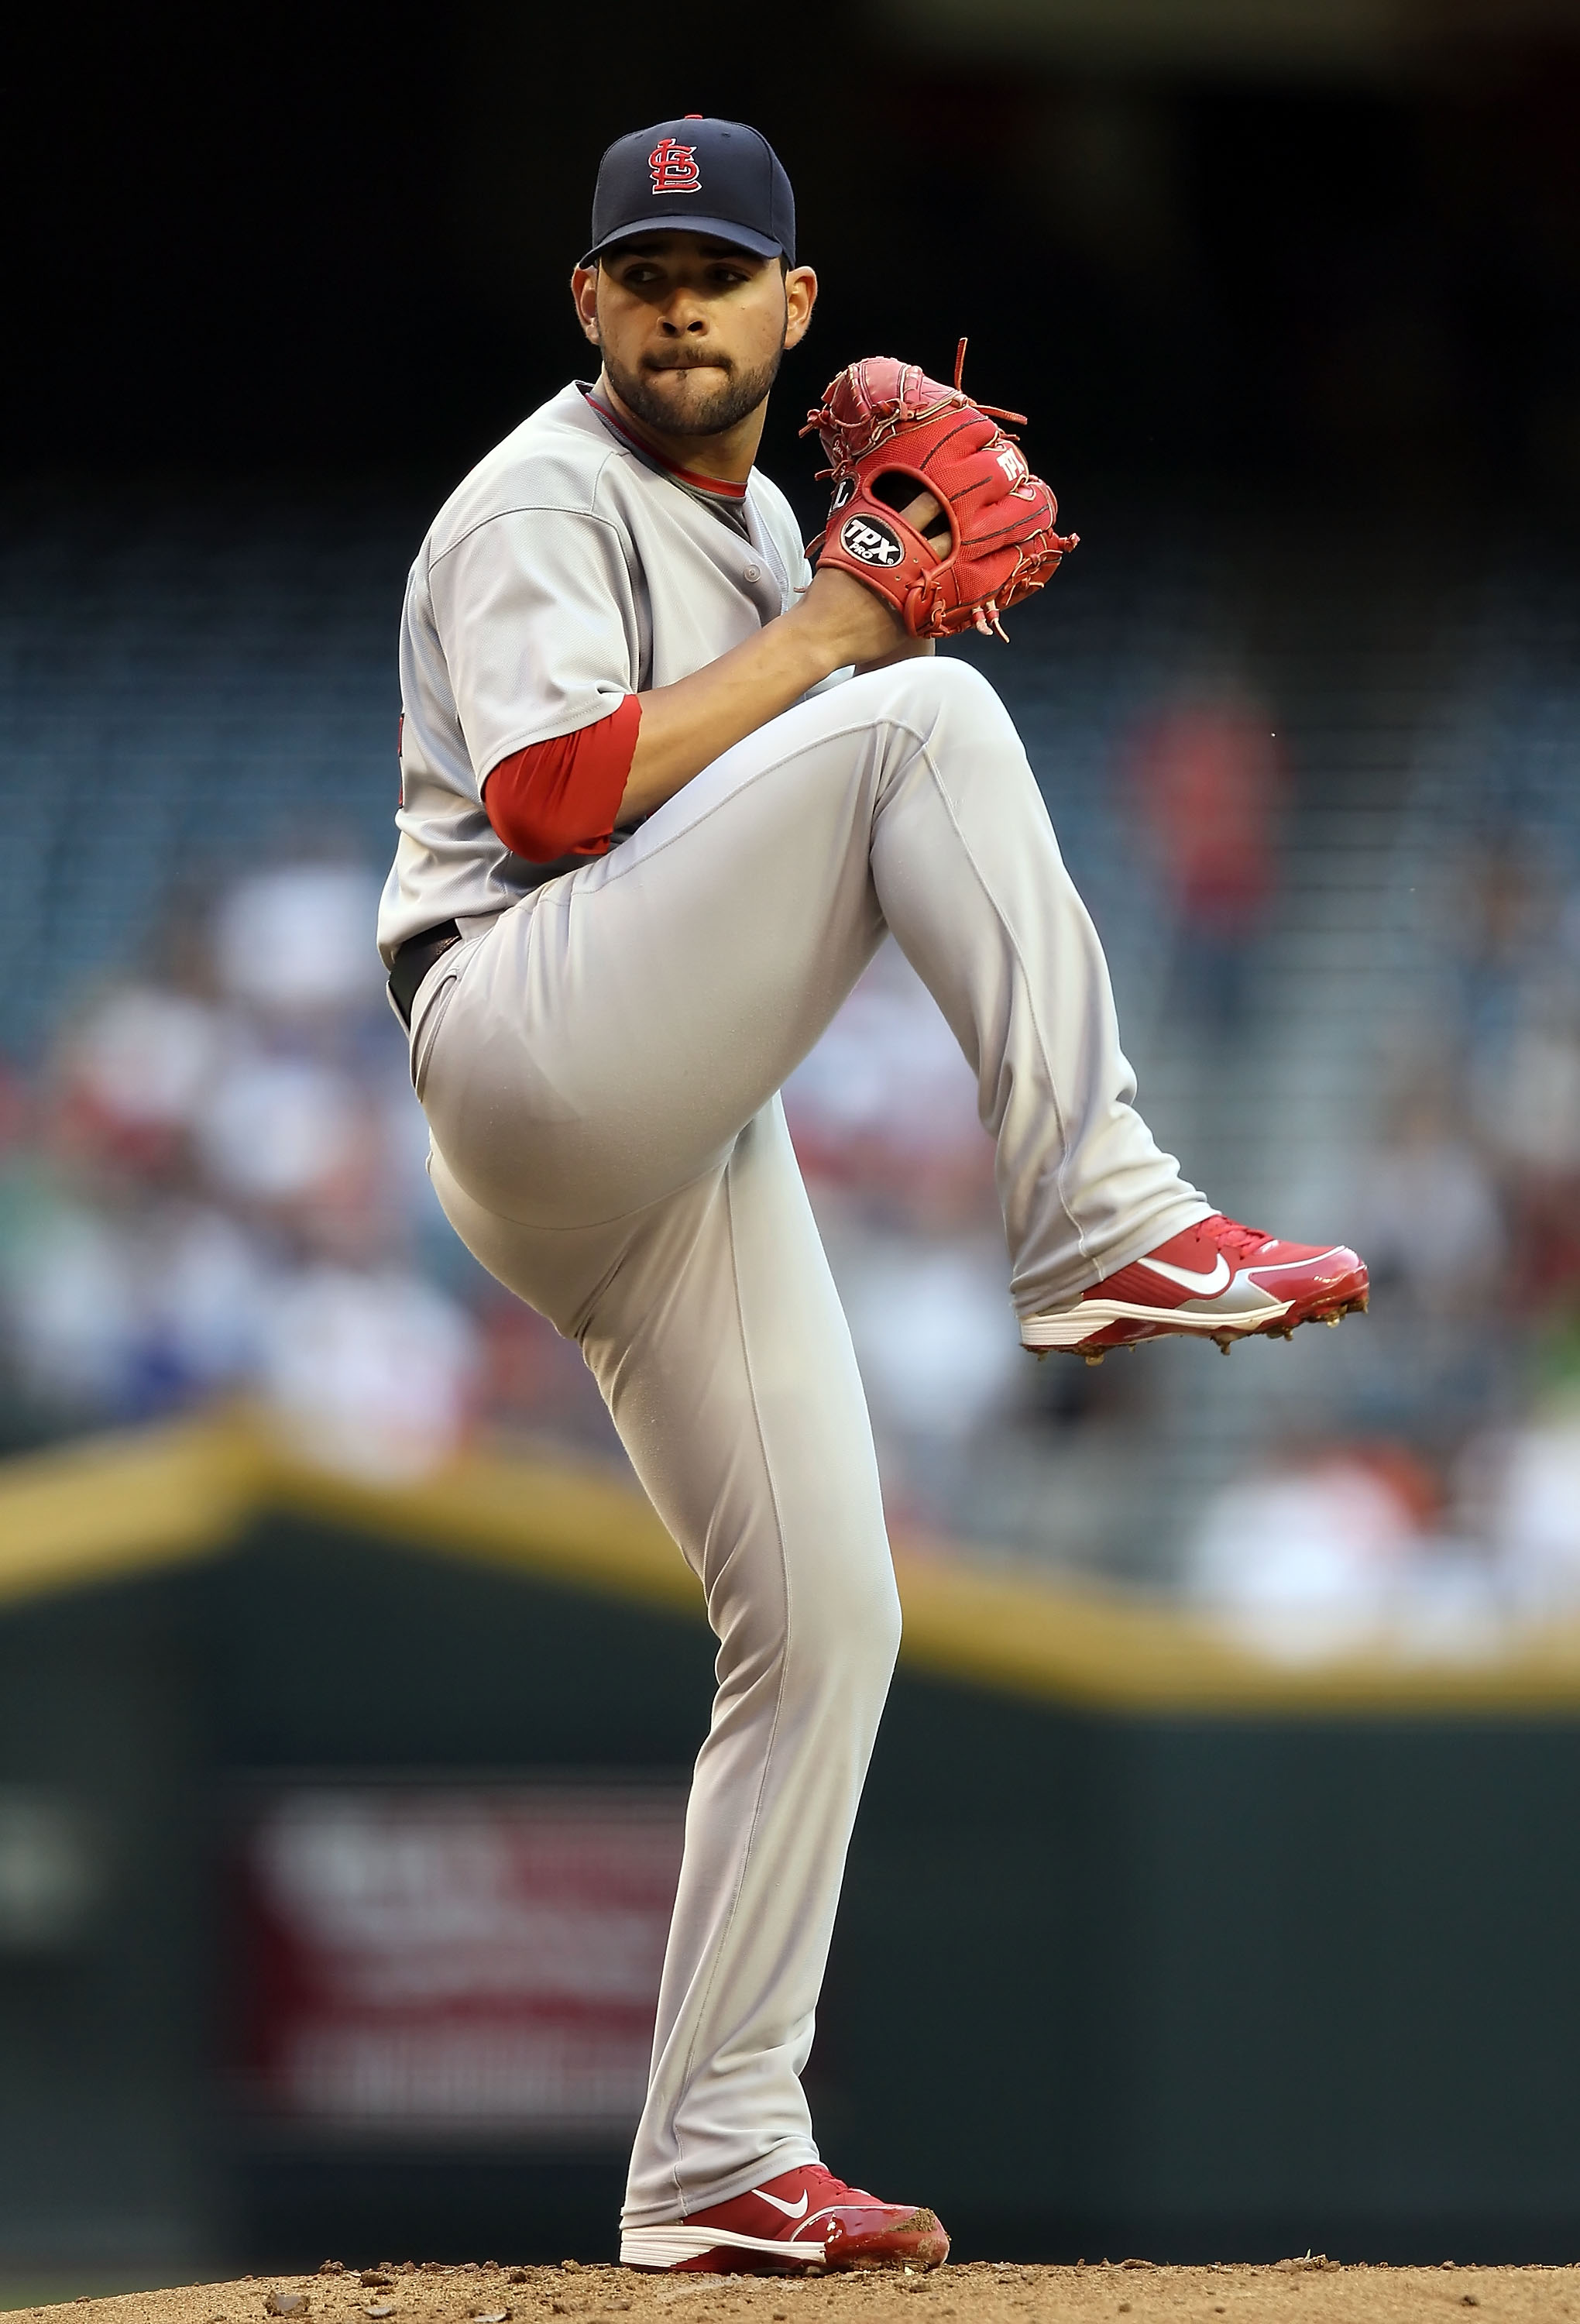 PHOENIX - JUNE 11:  Relief pitcher Jaime Garcia #54 of the St. Louis Cardinals pitches against the Arizona Diamondbacks during the Major League Baseball game at Chase Field on June 11, 2010 in Phoenix, Arizona.  (Photo by Christian Petersen/Getty Images)